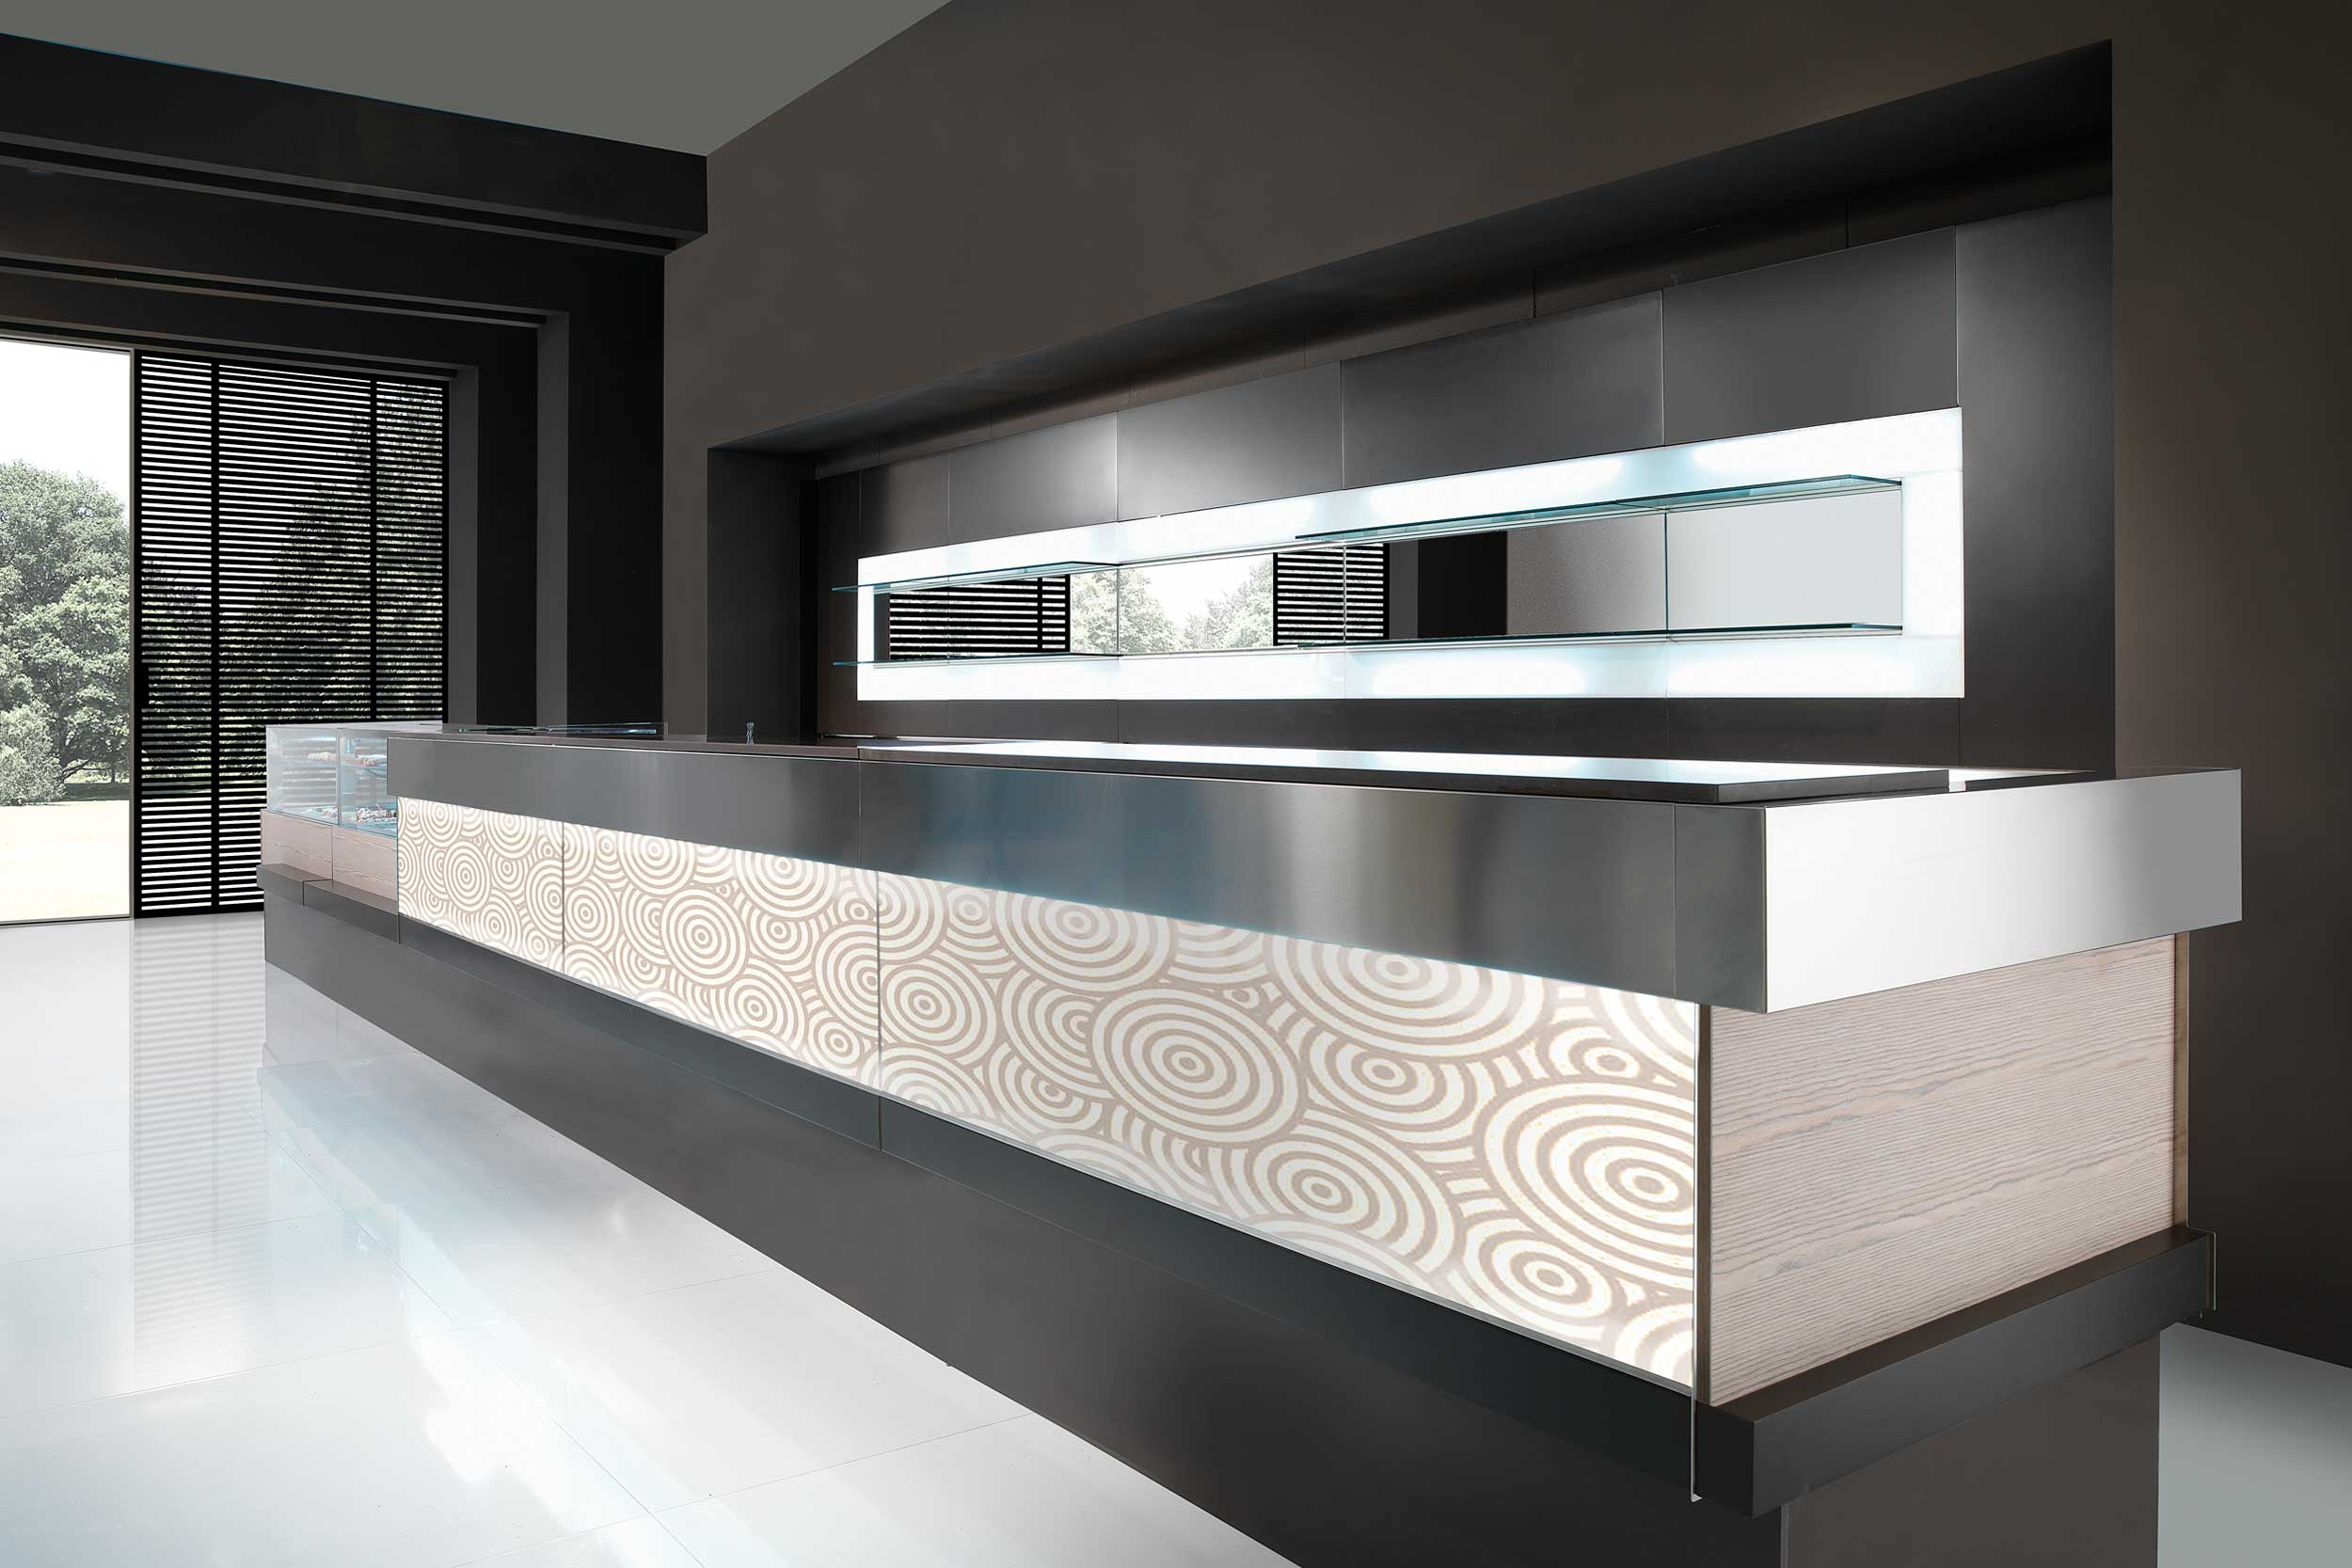 Arredo scoop arredamento per bar artic for Artic arredo bar